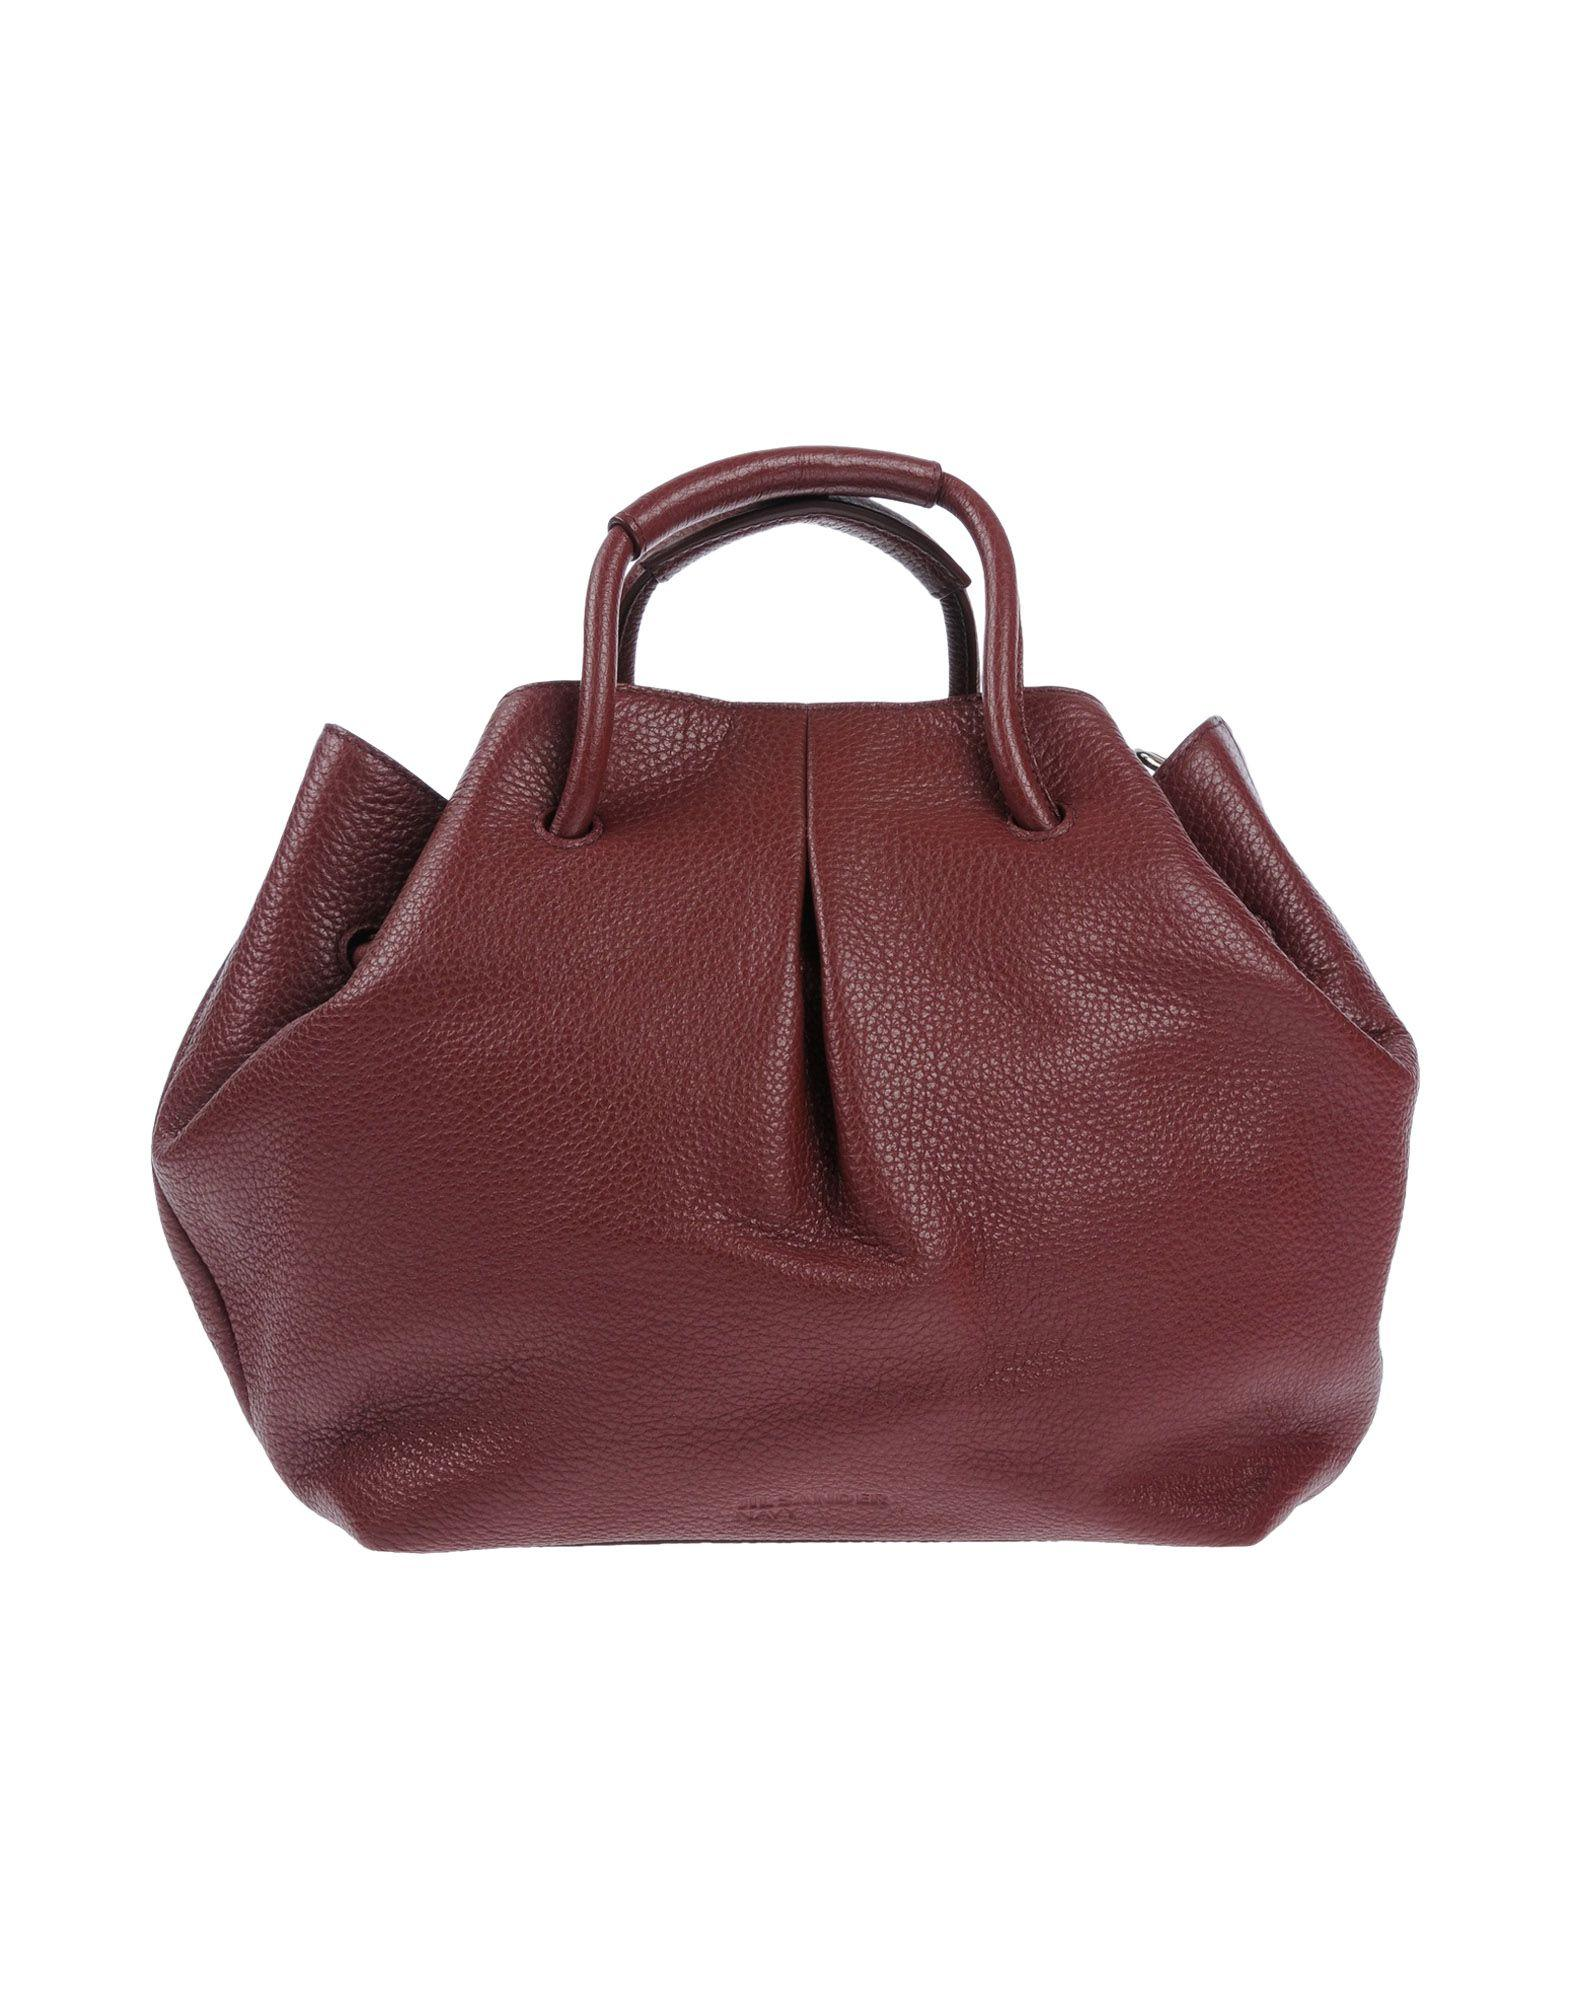 Jil Sander Handbags In Maroon